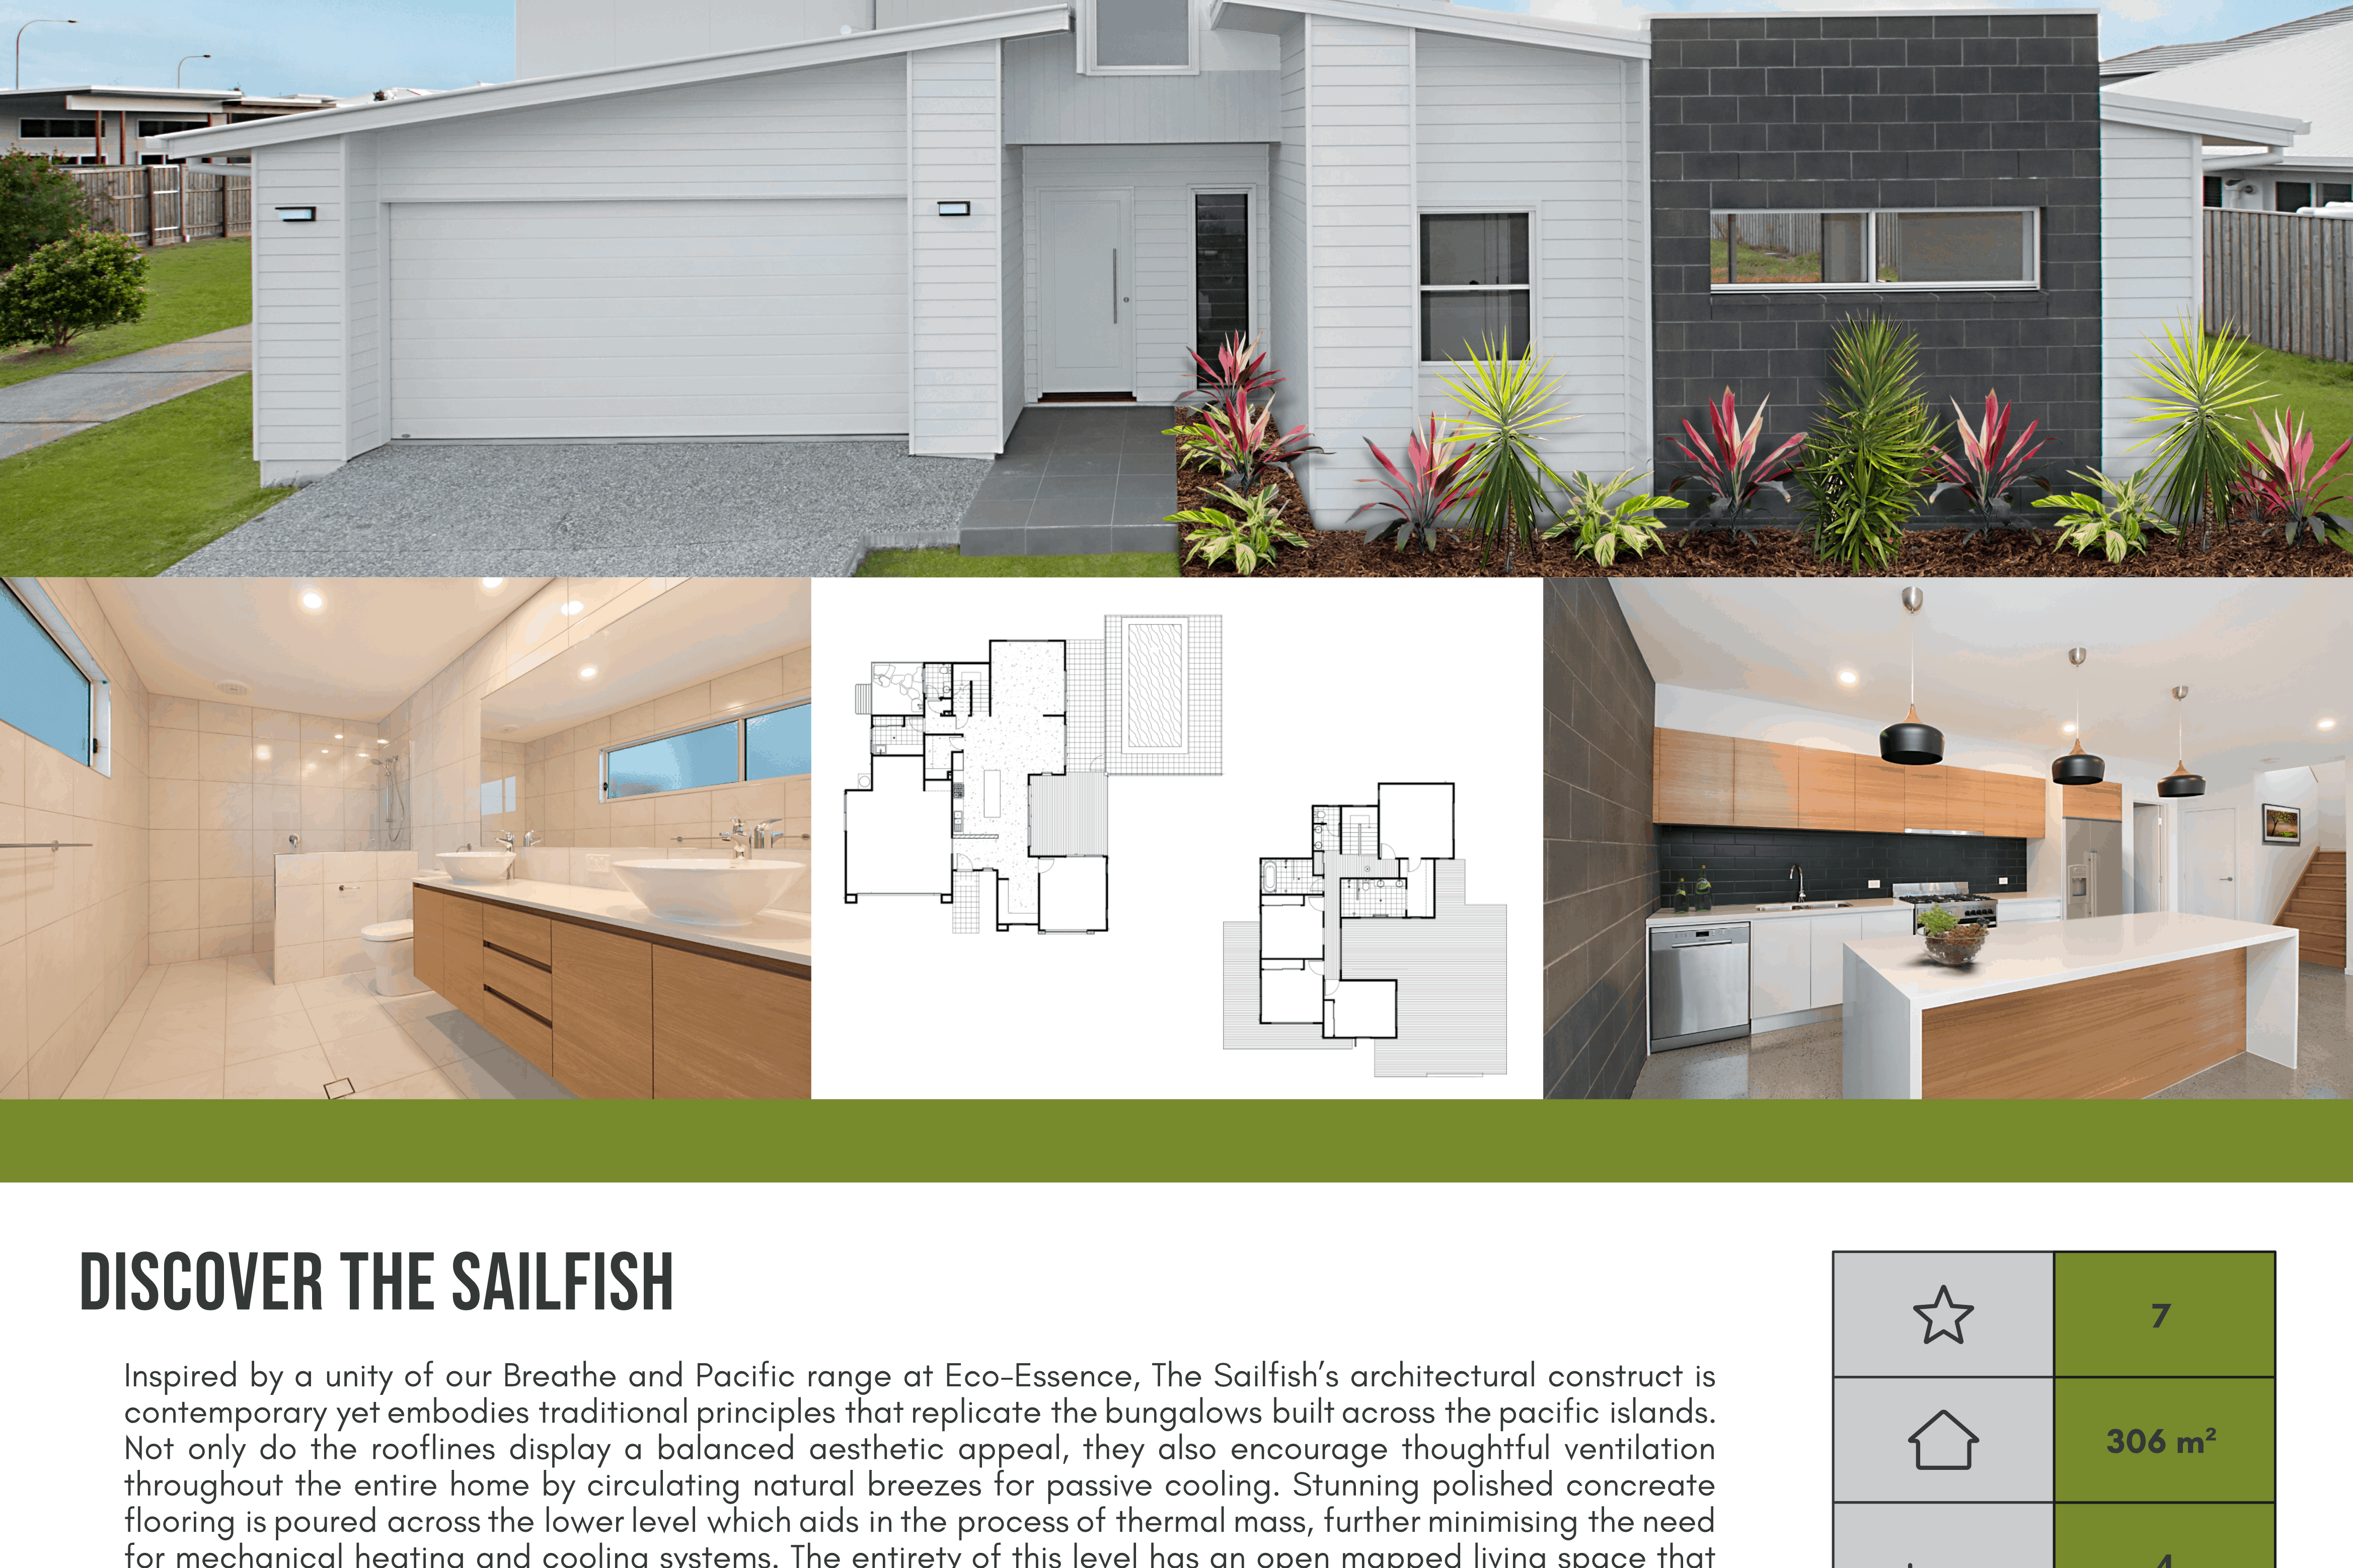 The Sailfish Download Brochure Thank You